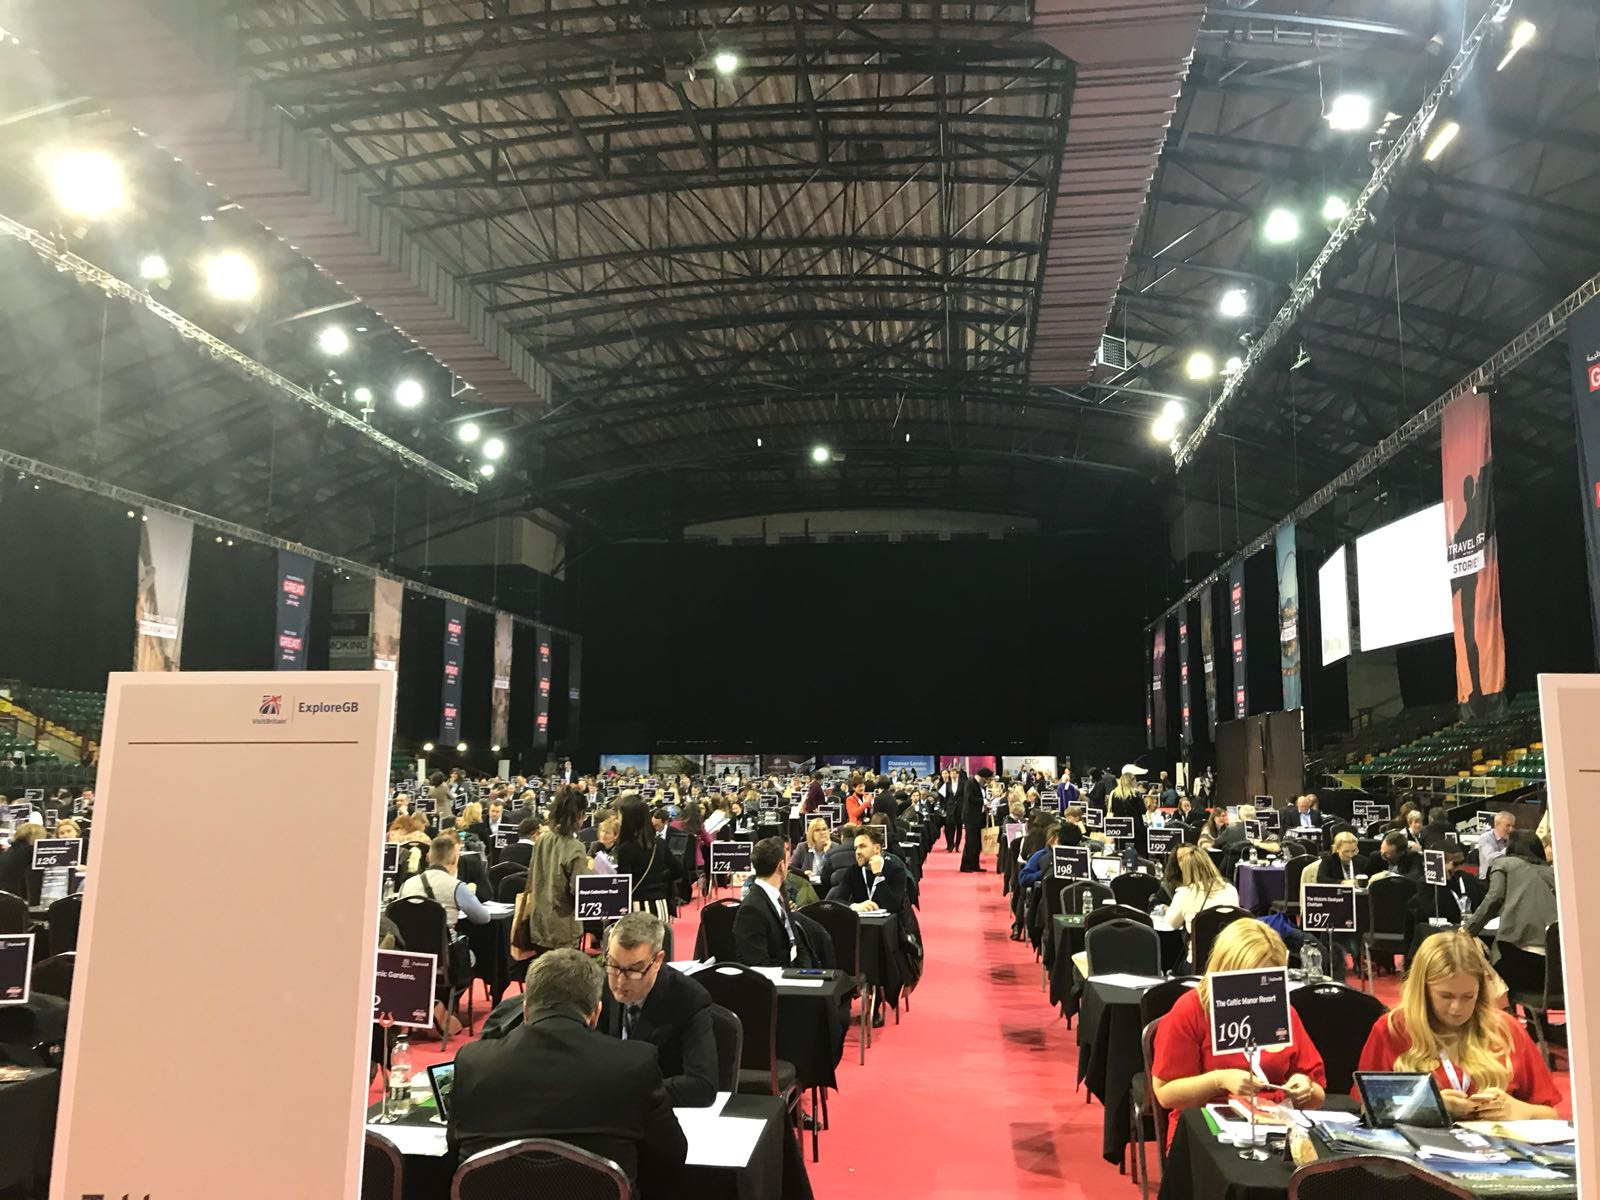 ExploreGB 2018 in Newcastle